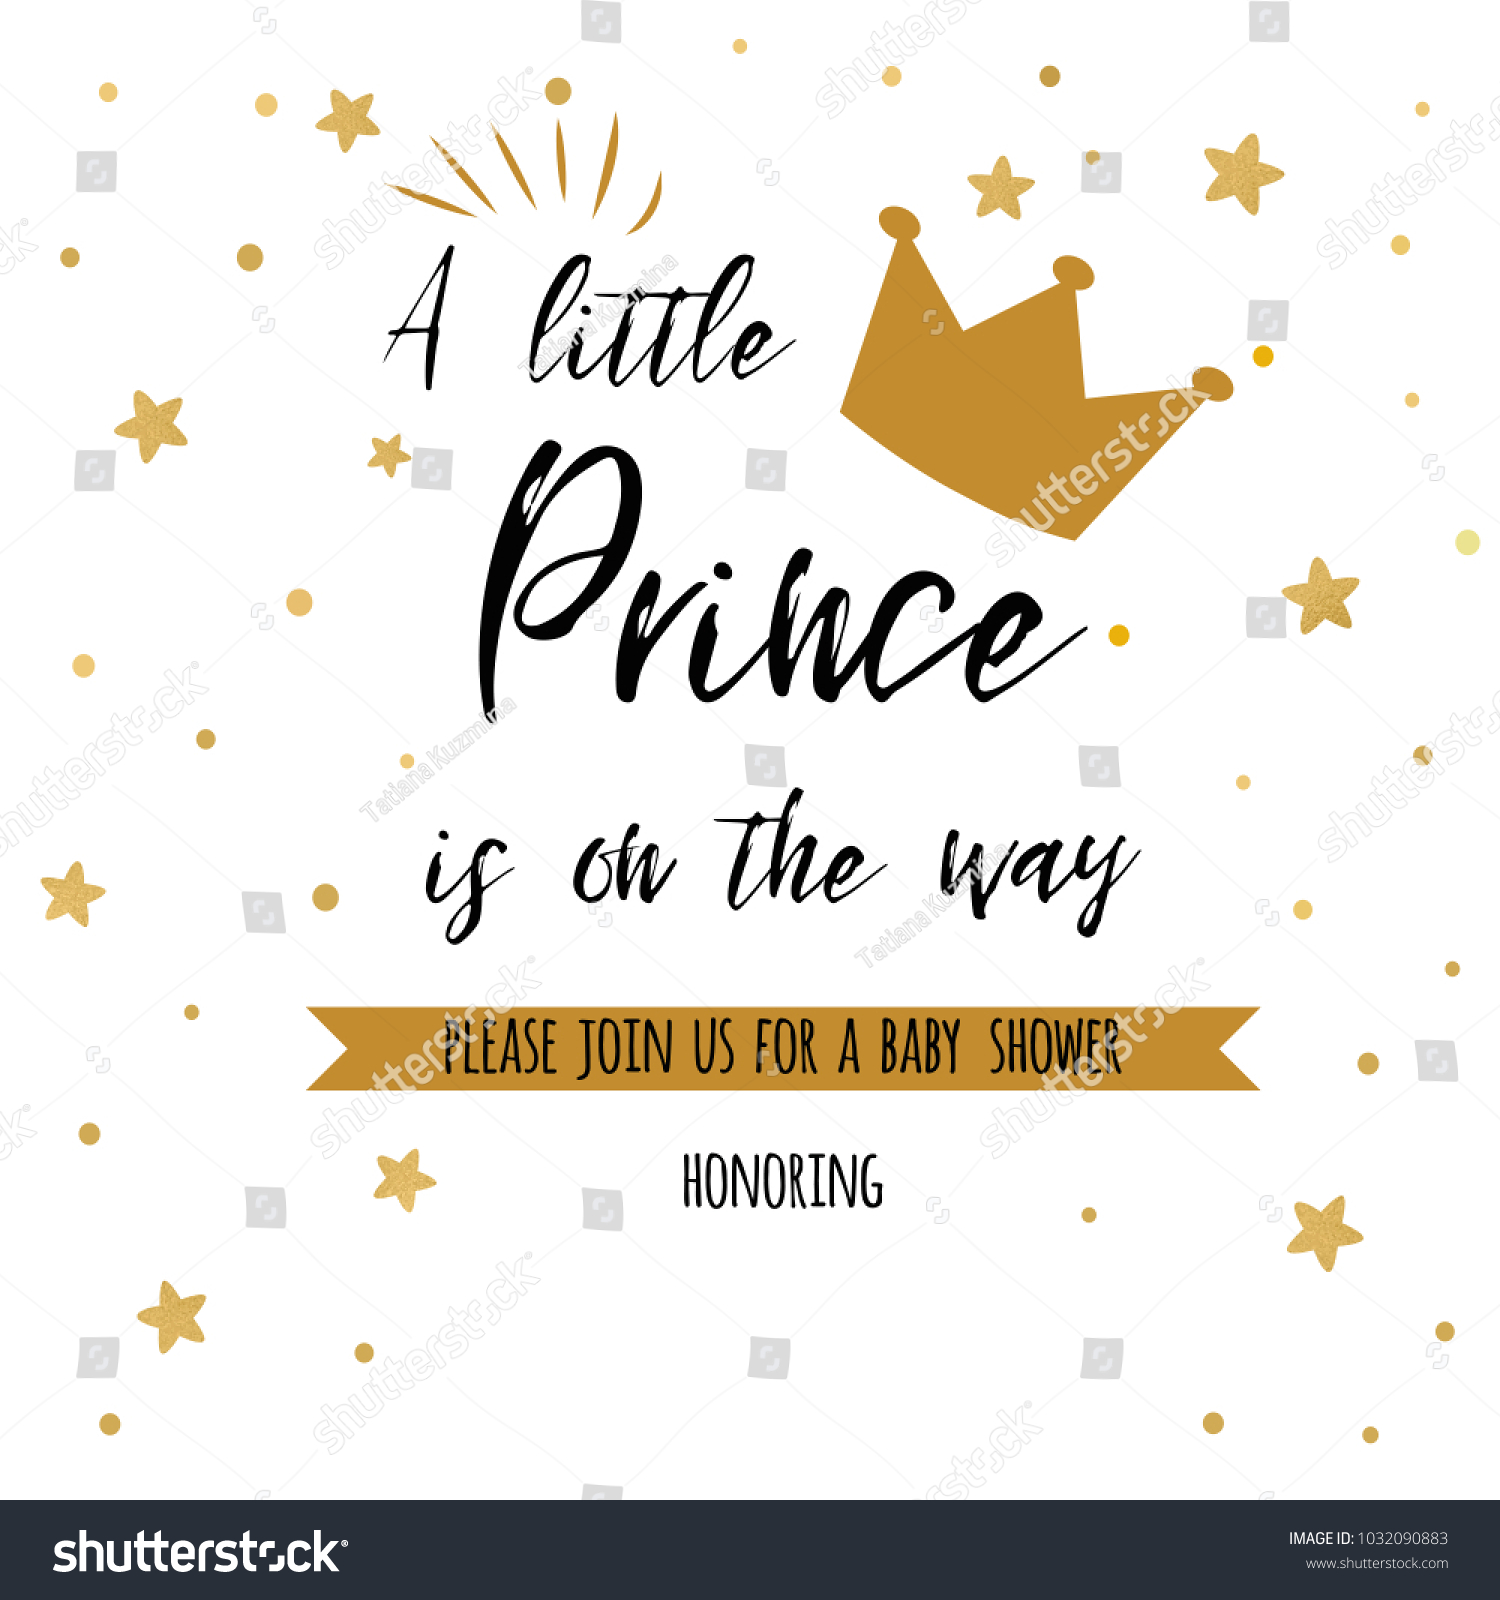 Text Little Prince On Way Gold Stock Vector 1032090883 - Shutterstock